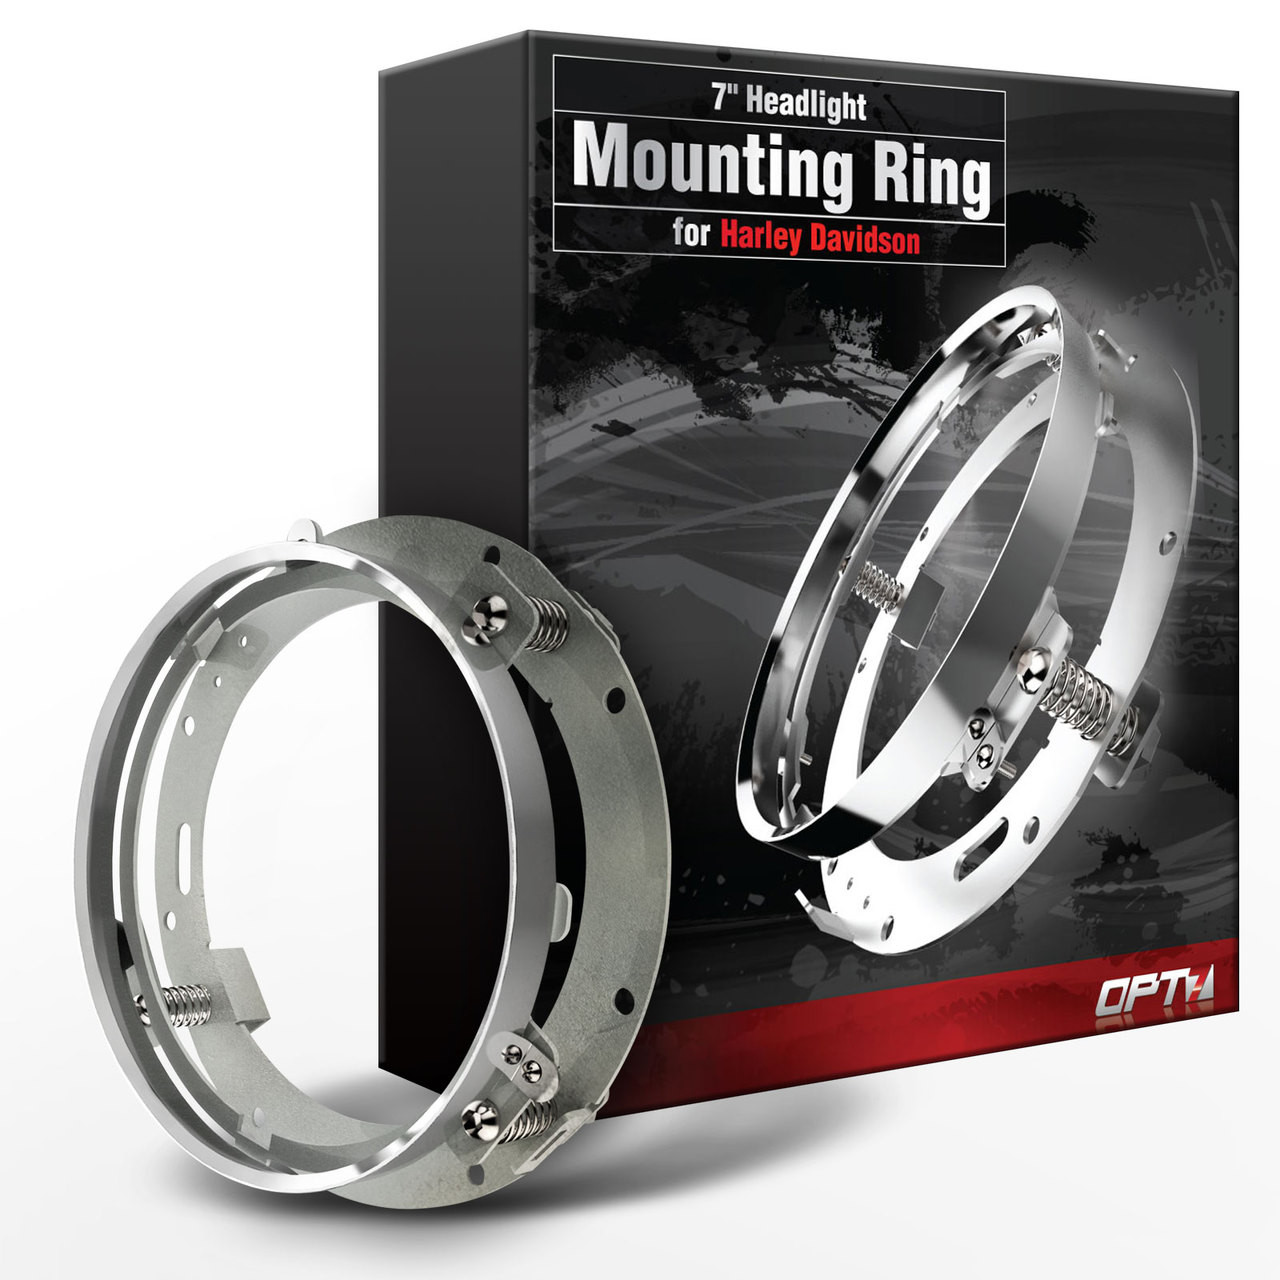 hight resolution of 7 inch led daymaker headlight mounting ring bracket for harley davidsons opt7